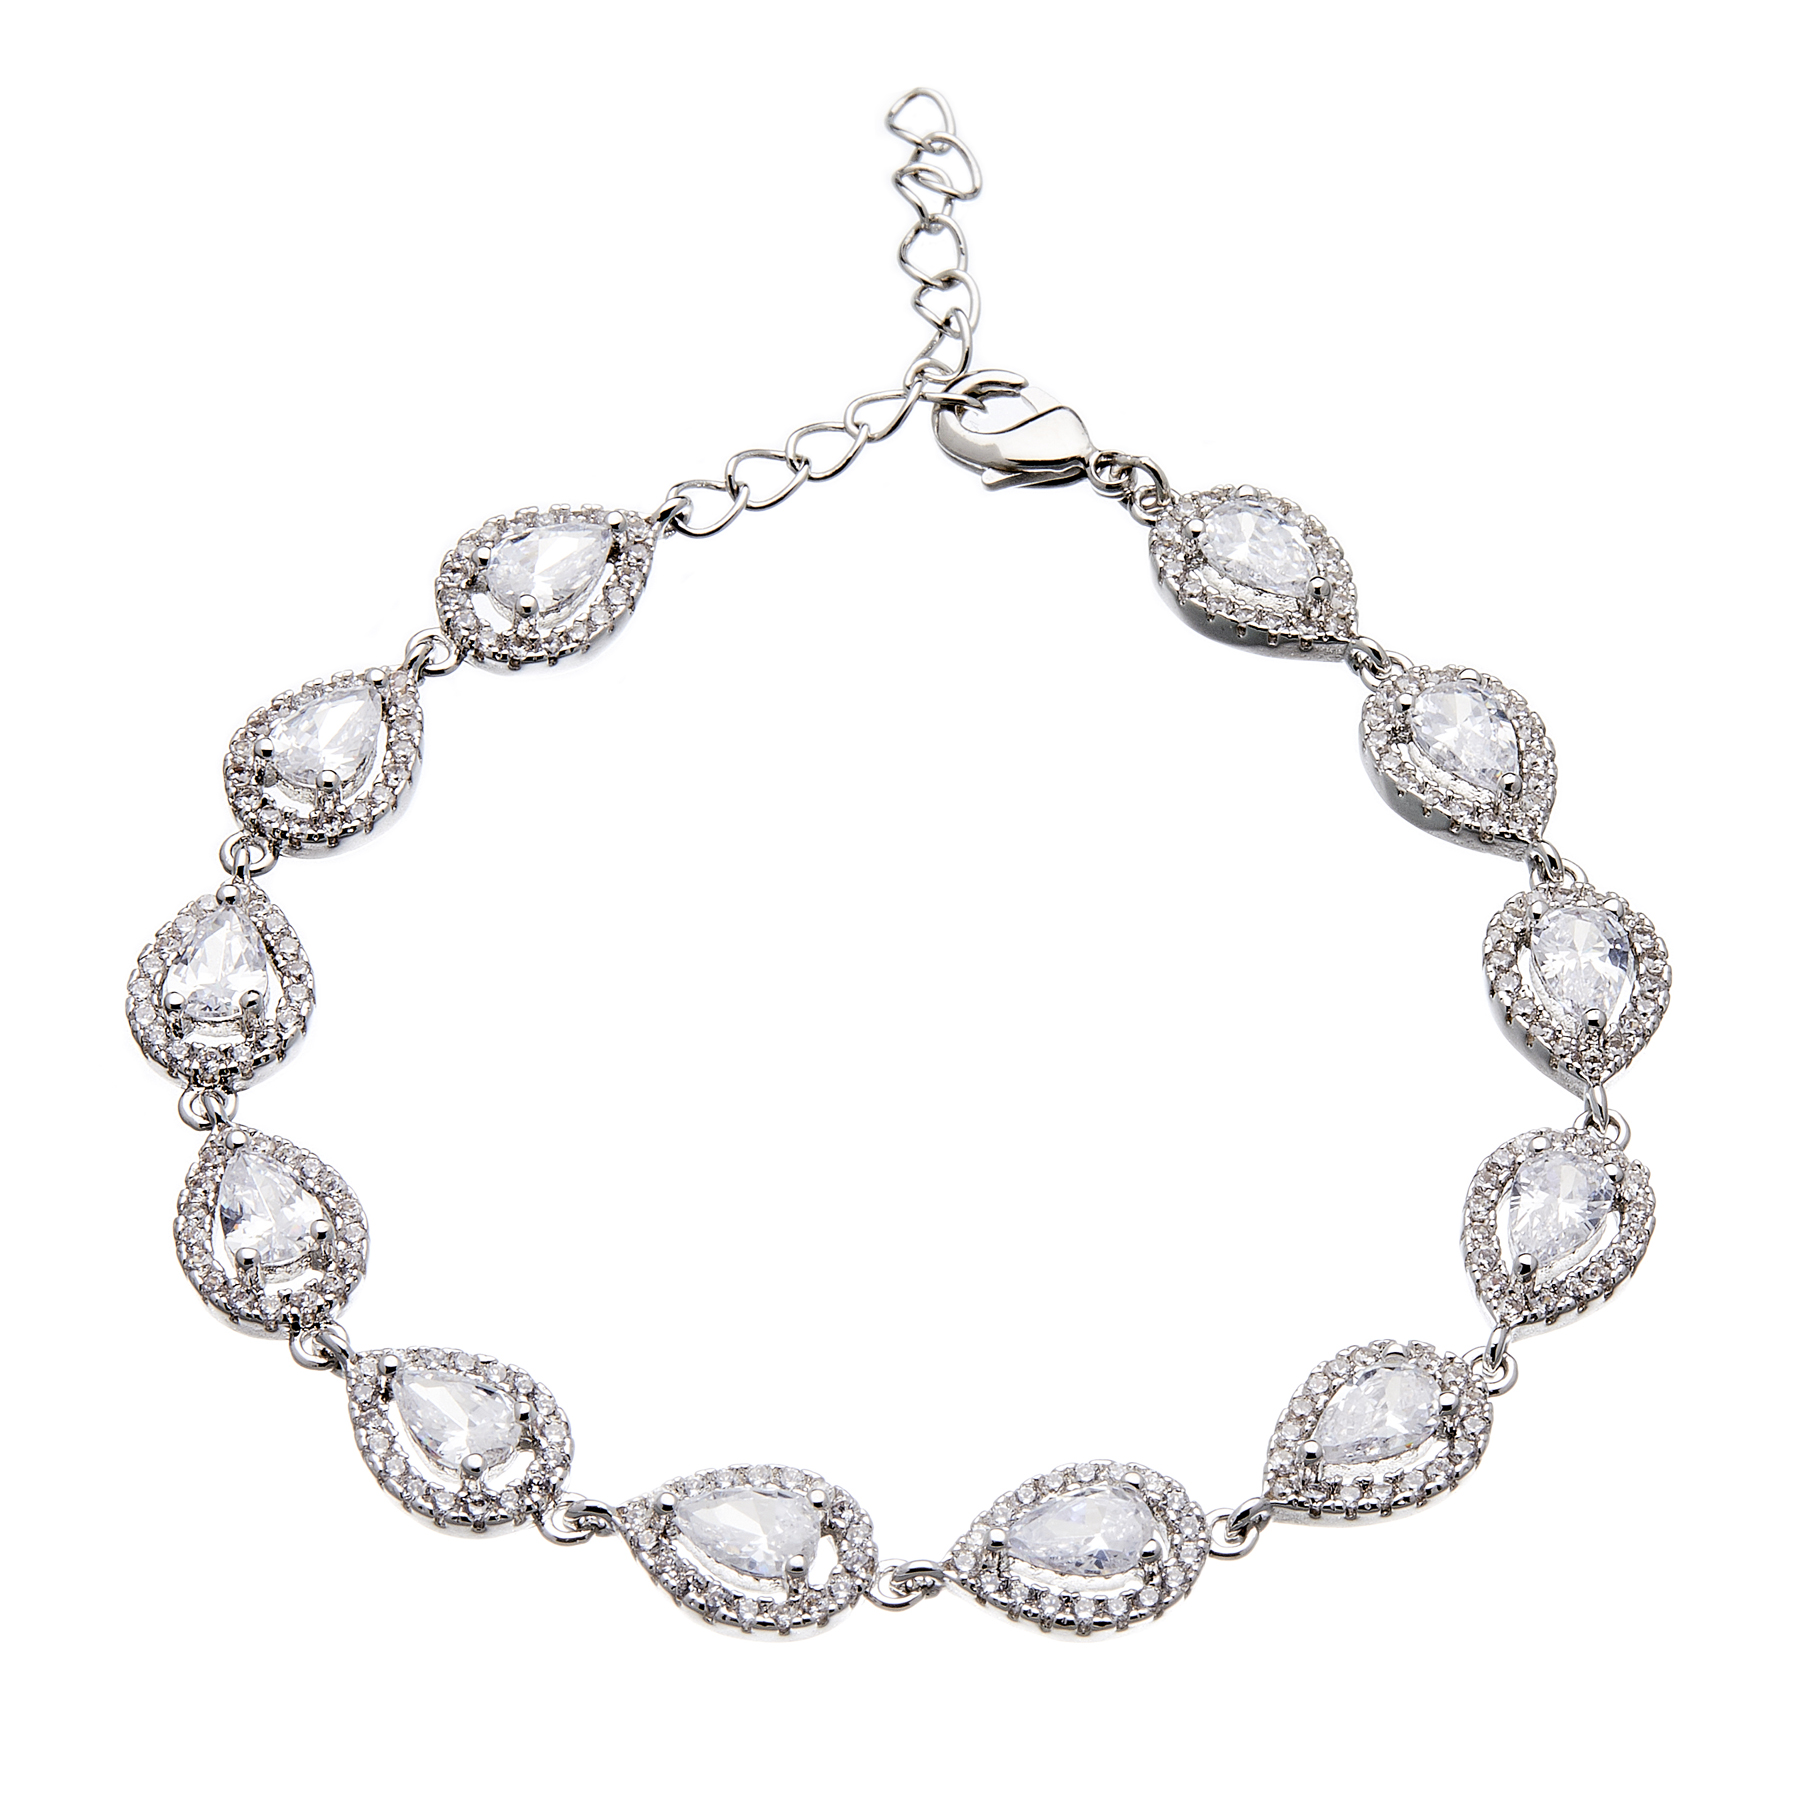 Luxury Bracelet - silver with sparkling Cubic Zirconia Stones and crystals - Nadet